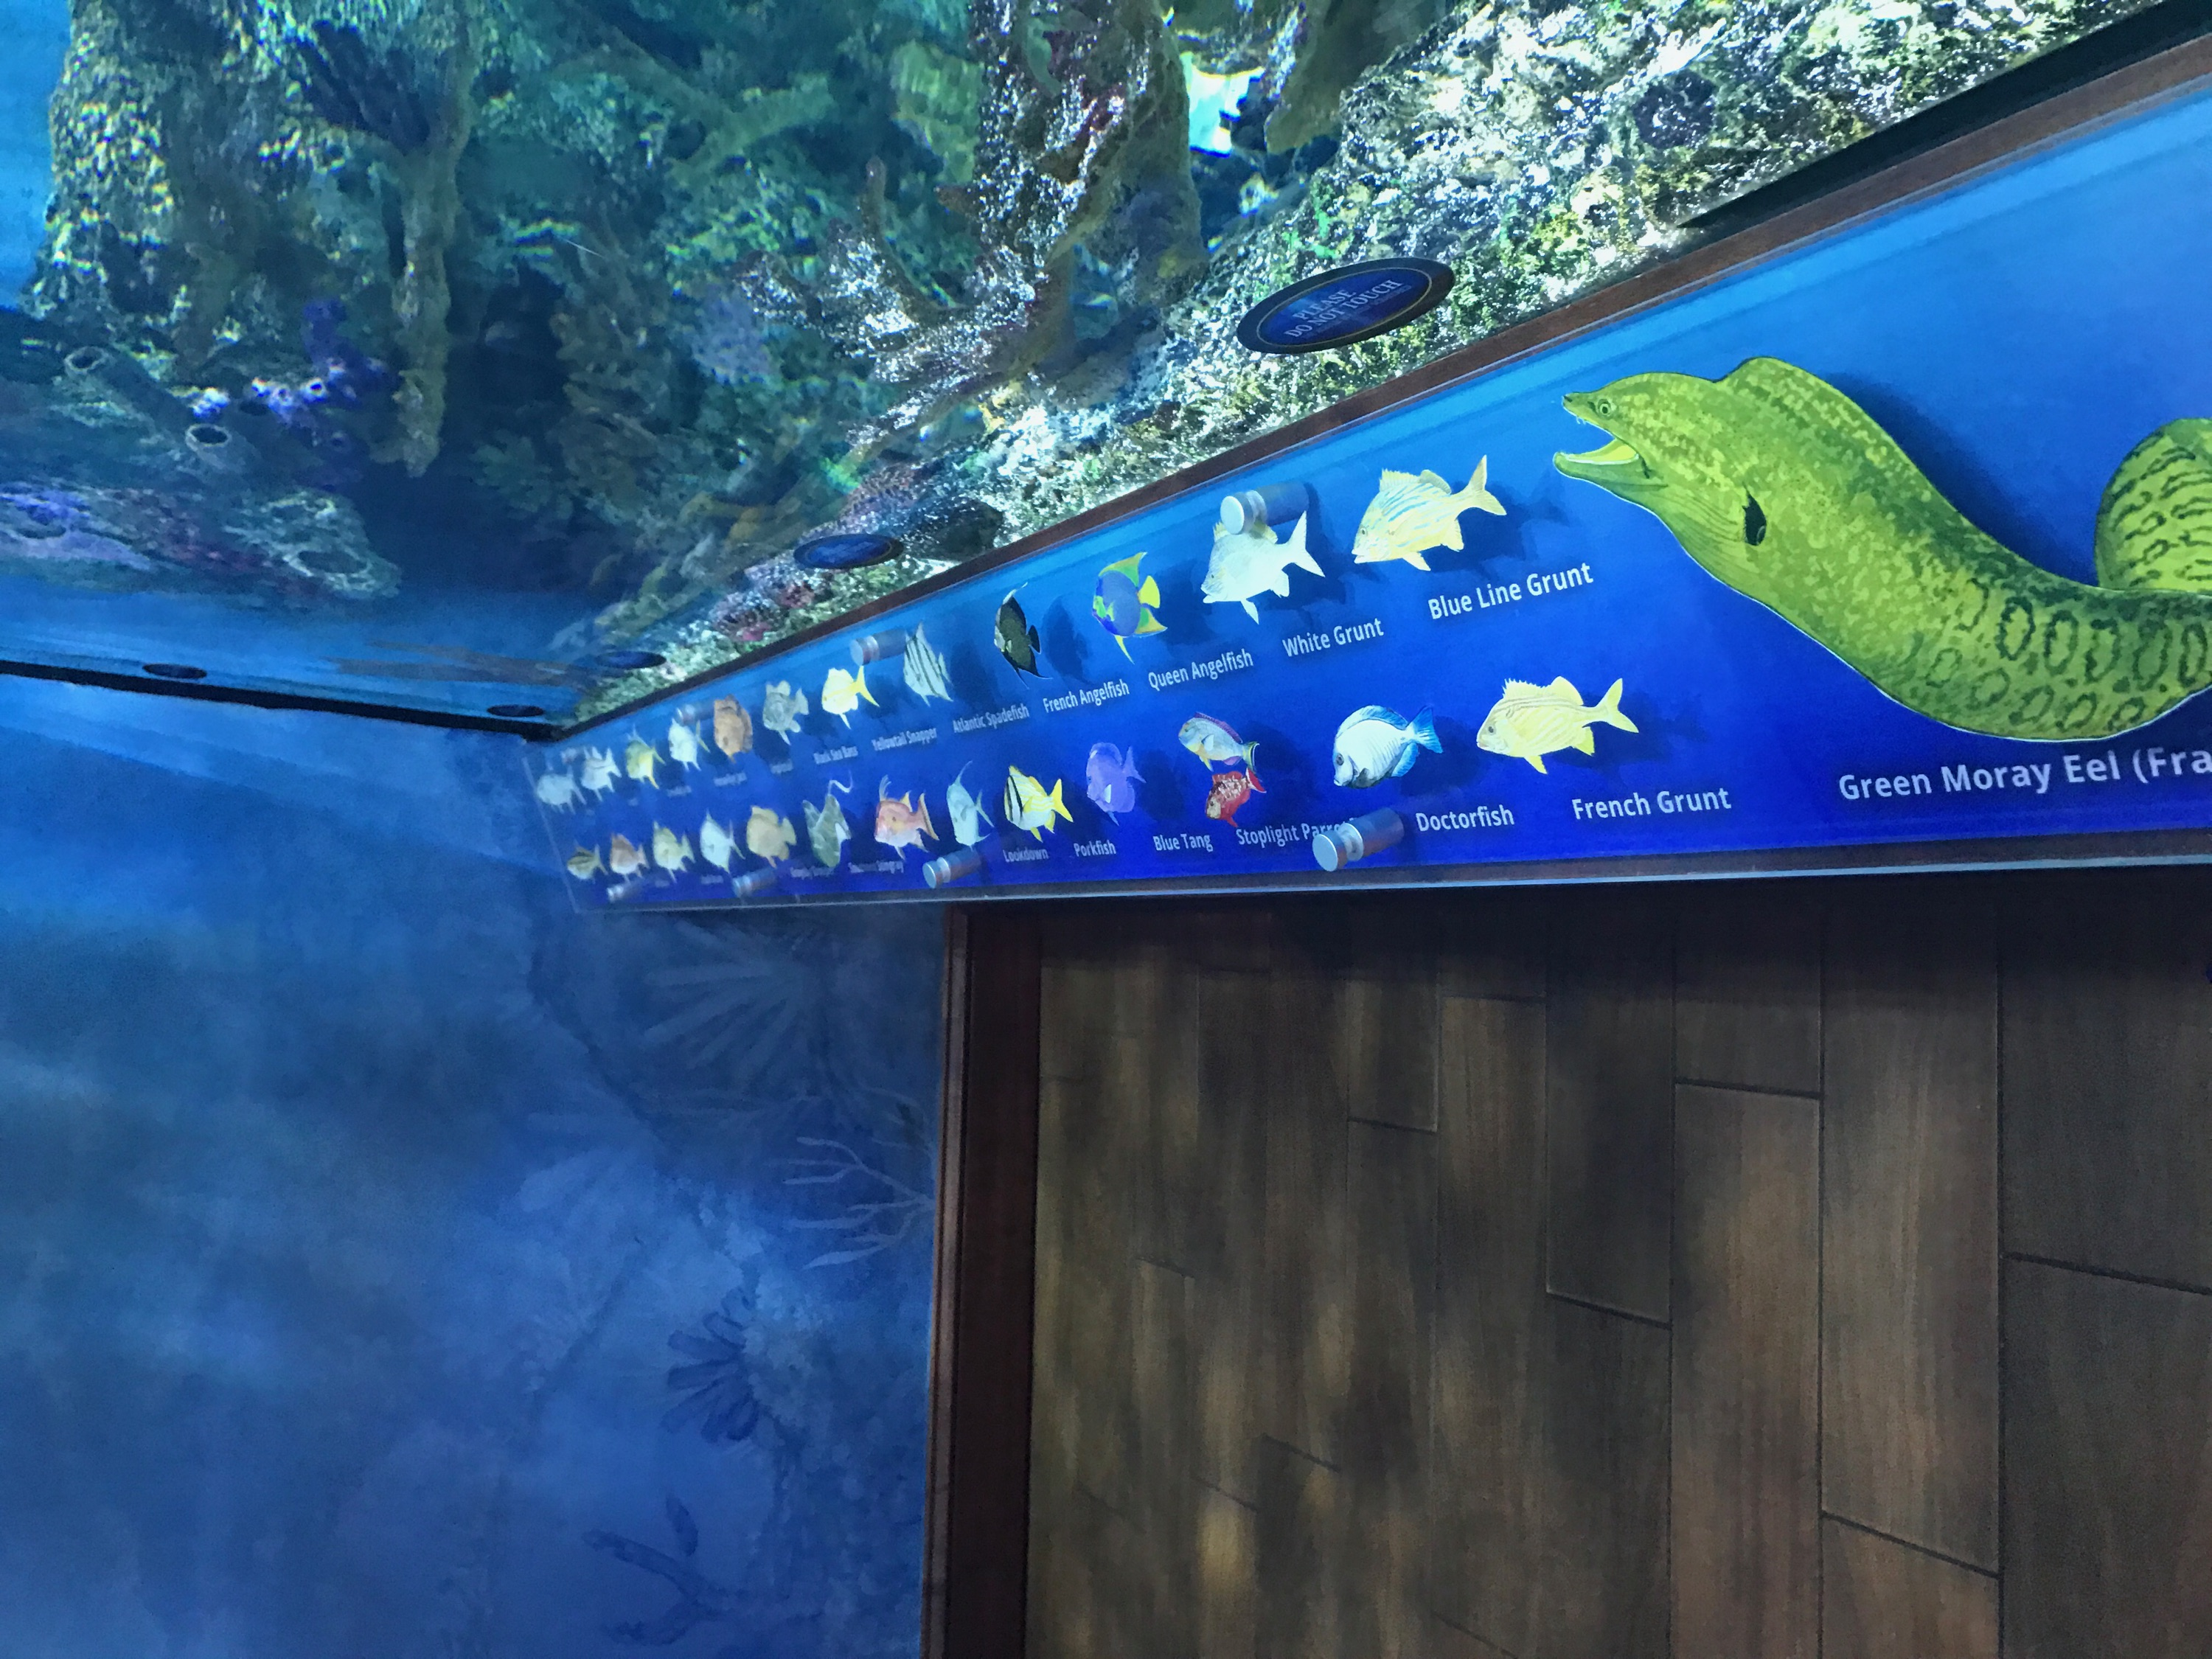 Photo of the custom graphic showing all of the fish in the aquarium.